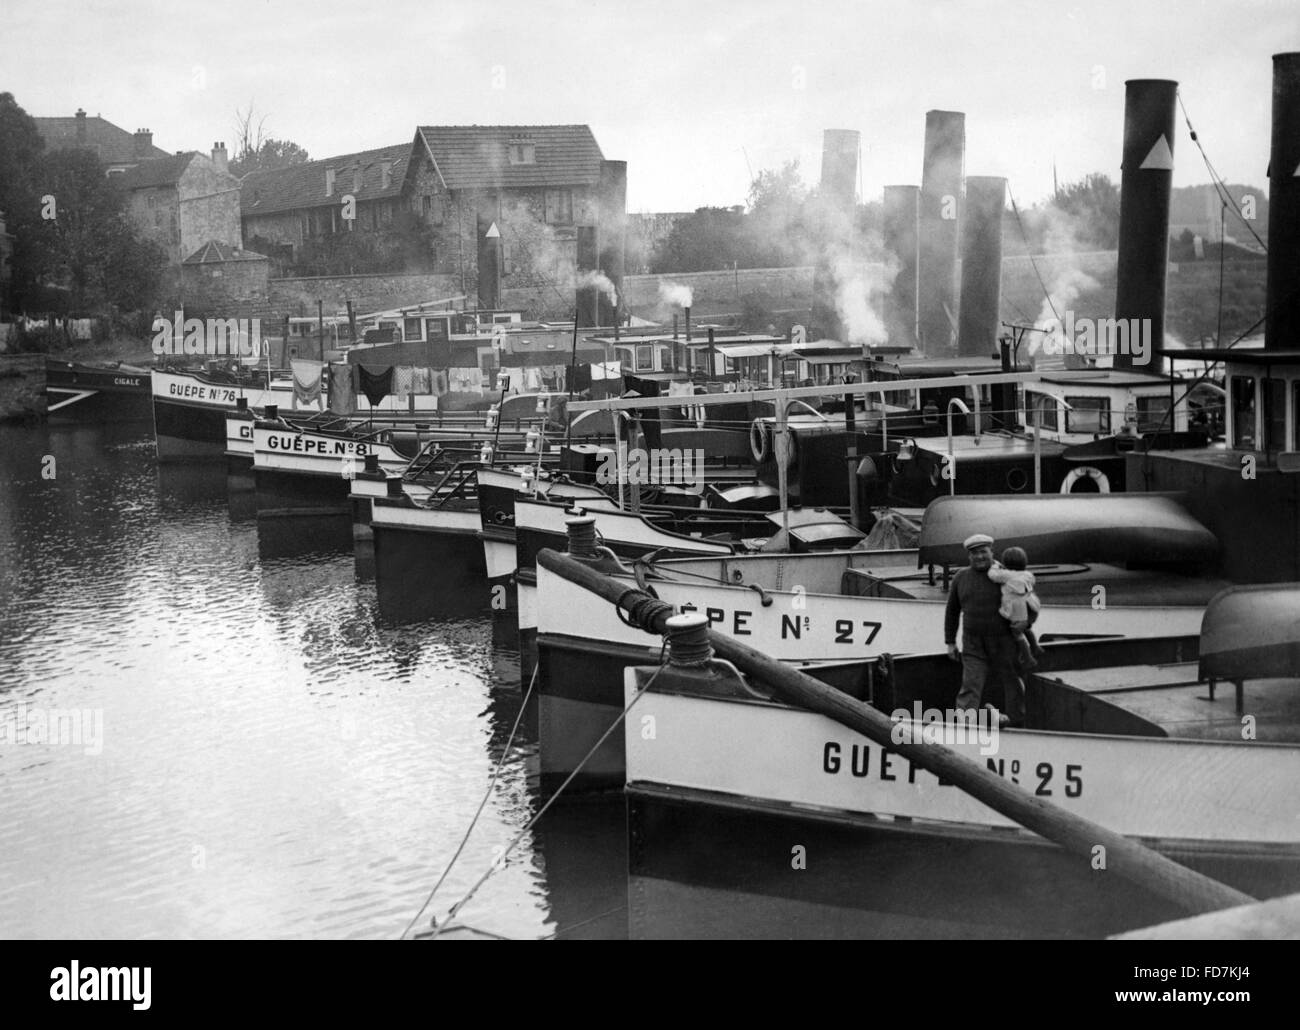 Striking boatmen in Conflans, 1936 - Stock Image